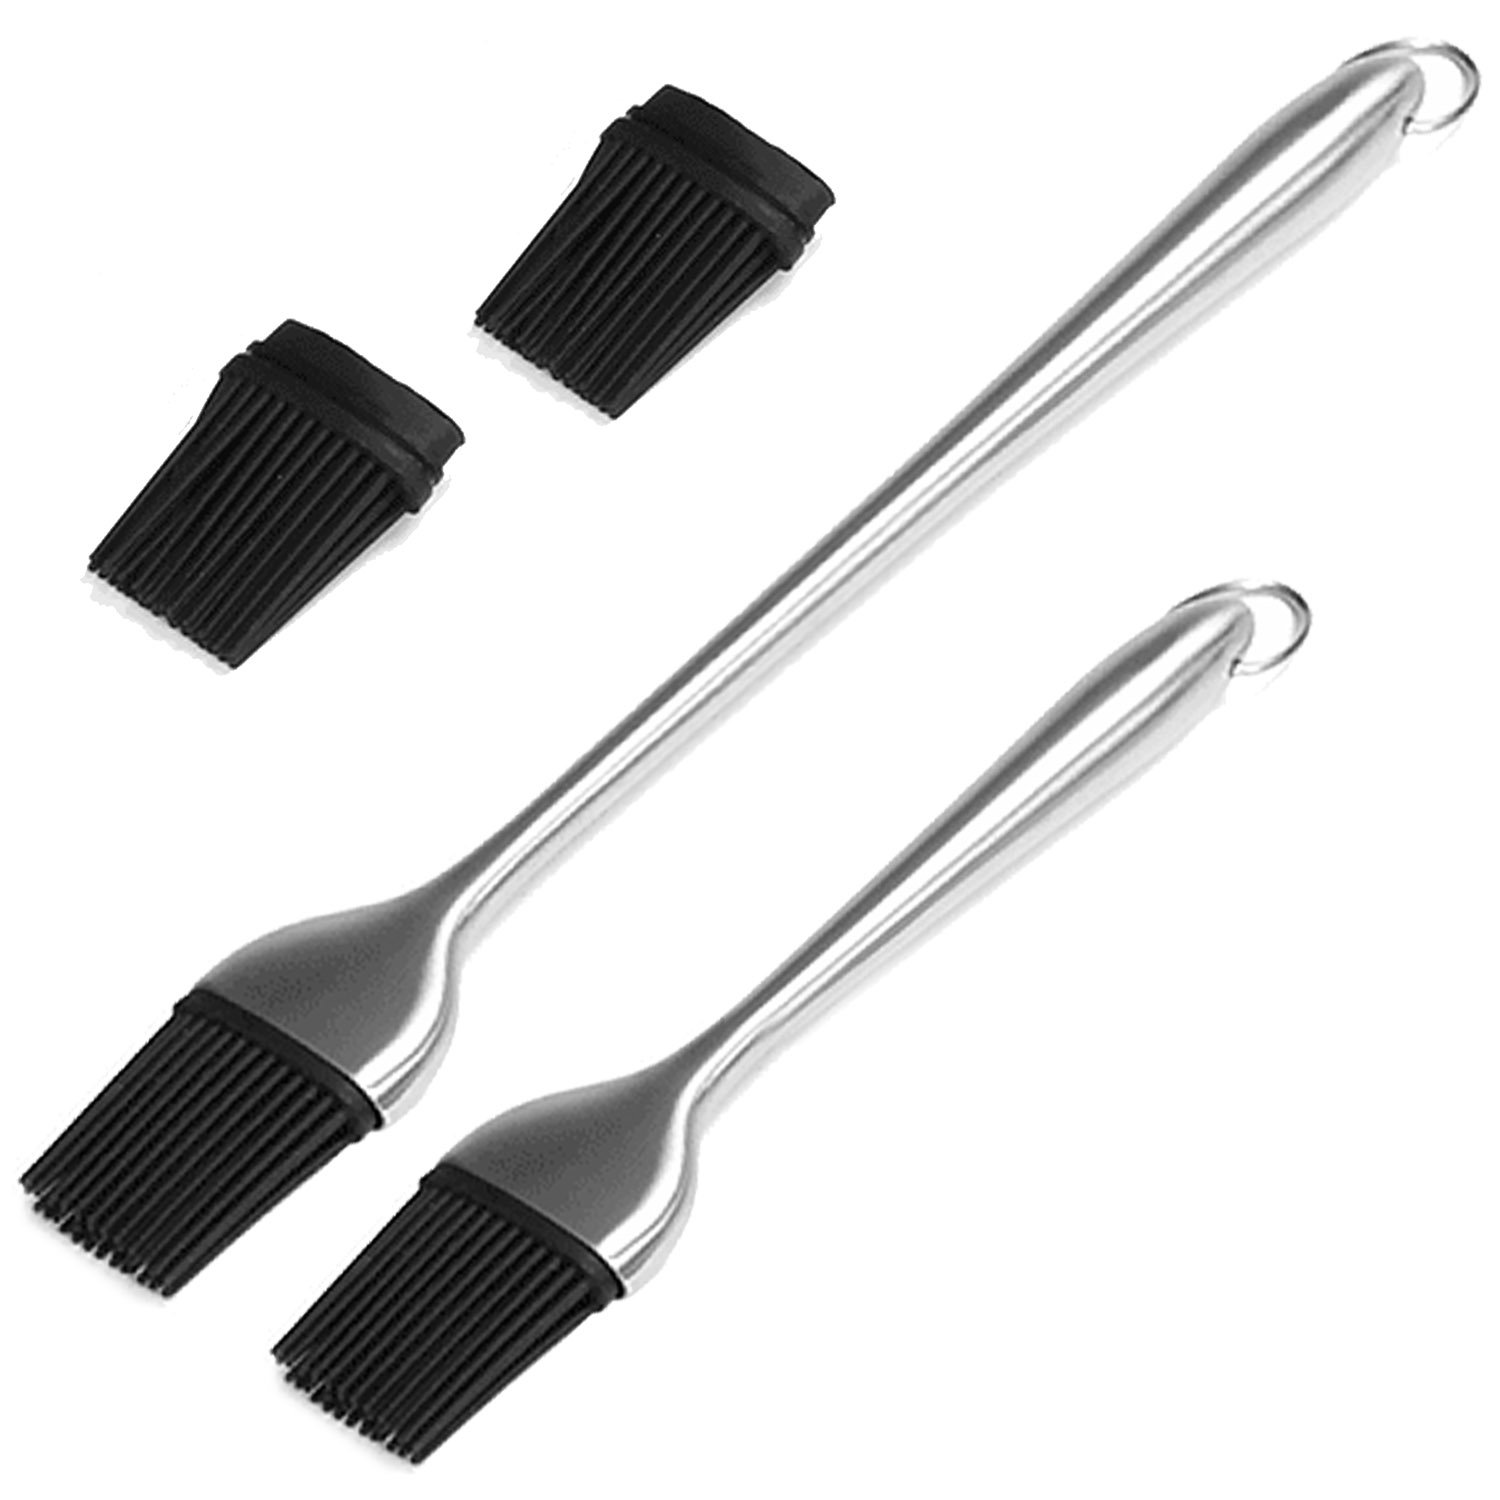 2 PCS 12 inch 7 inch Silicone Basting Pastry Brush with 2 Replacement Brush Head for Cooking Baking BBQ Gosear